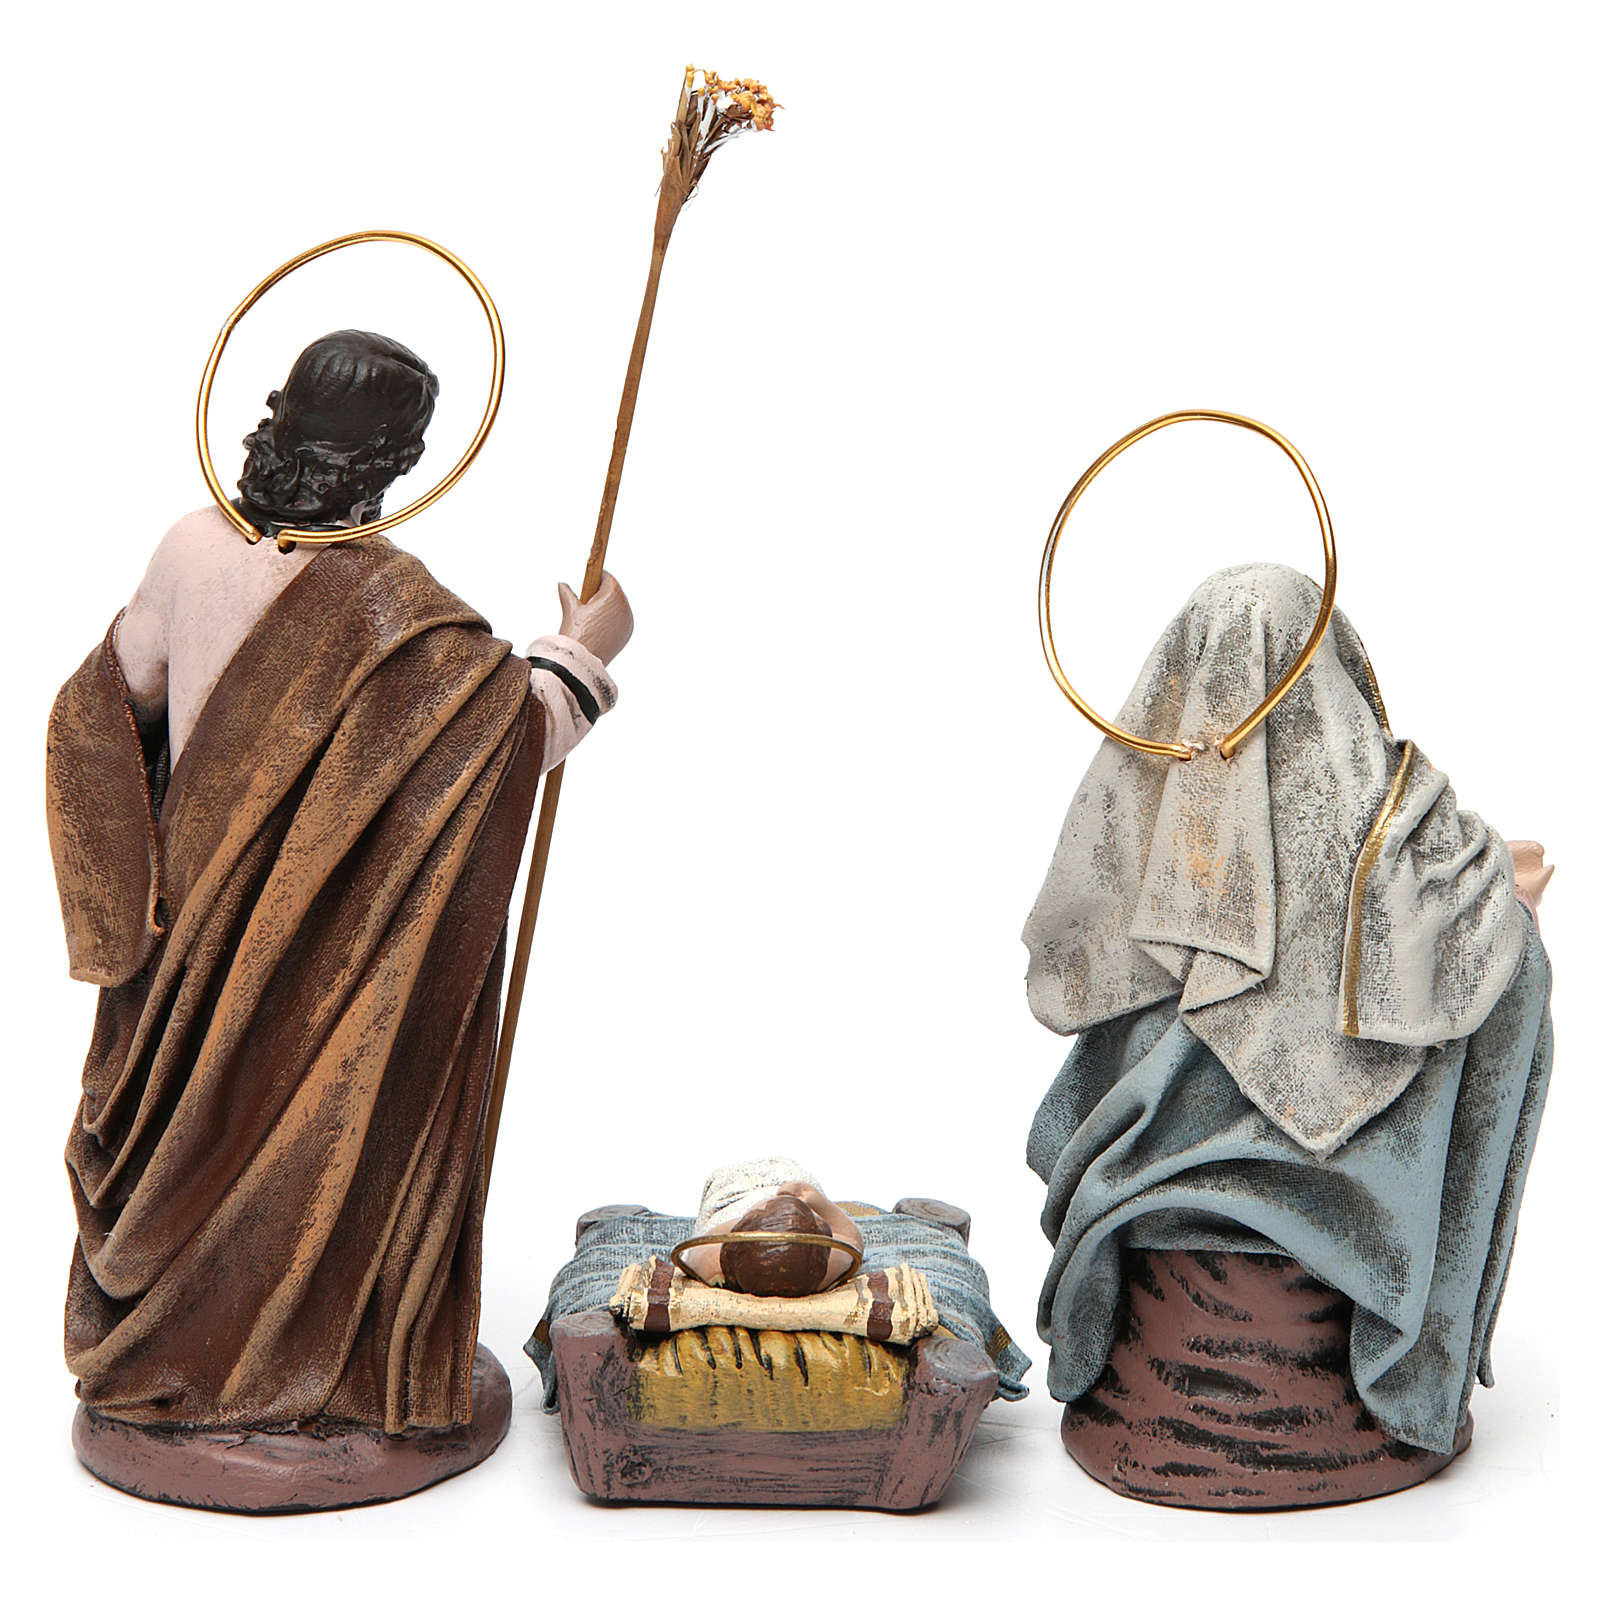 Birth of Jesus with sitting Mary and angel in terracotta for Nativity Scene 14 cm 3